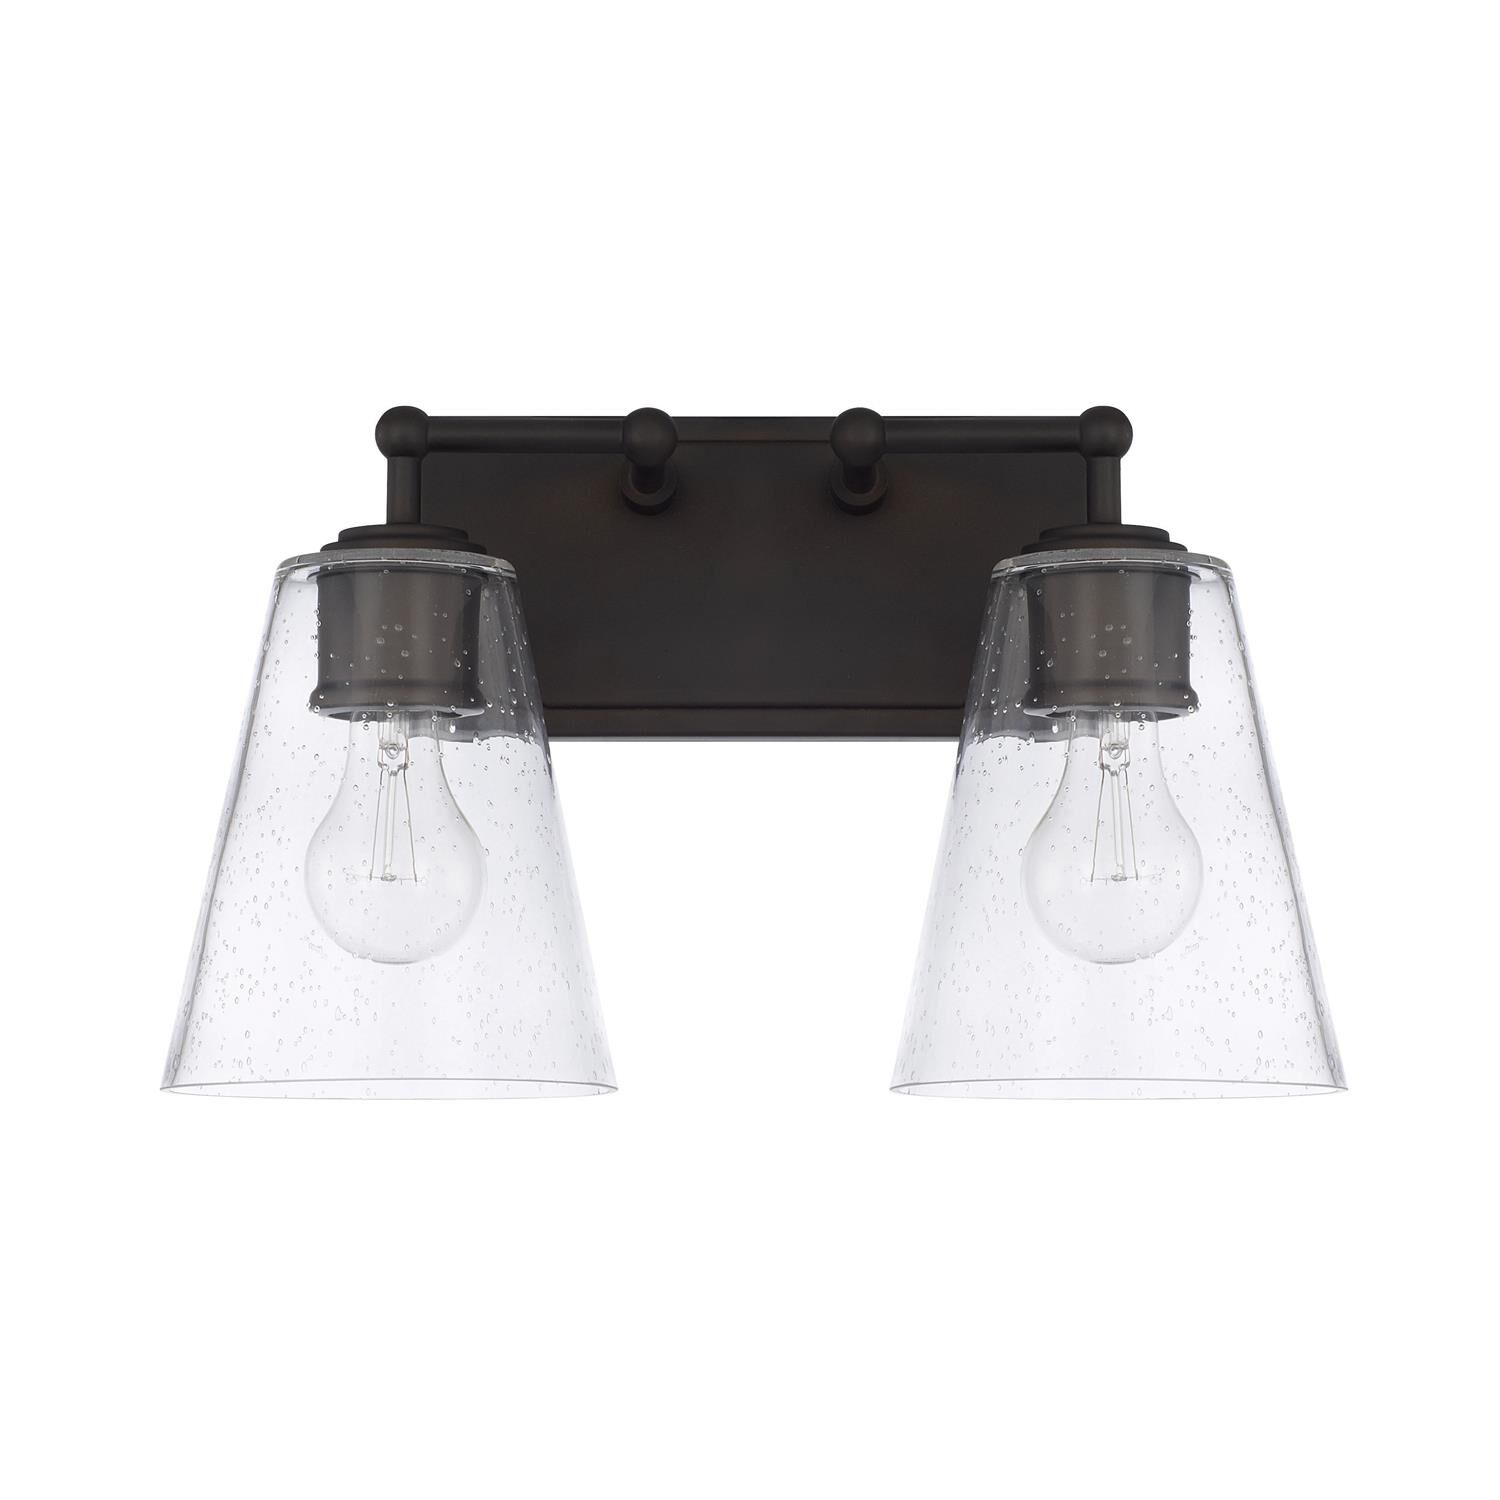 Capital Lighting Fixture Company 14 Inch 2 Light Bath Vanity Light - 121721ob-463 - Transitional